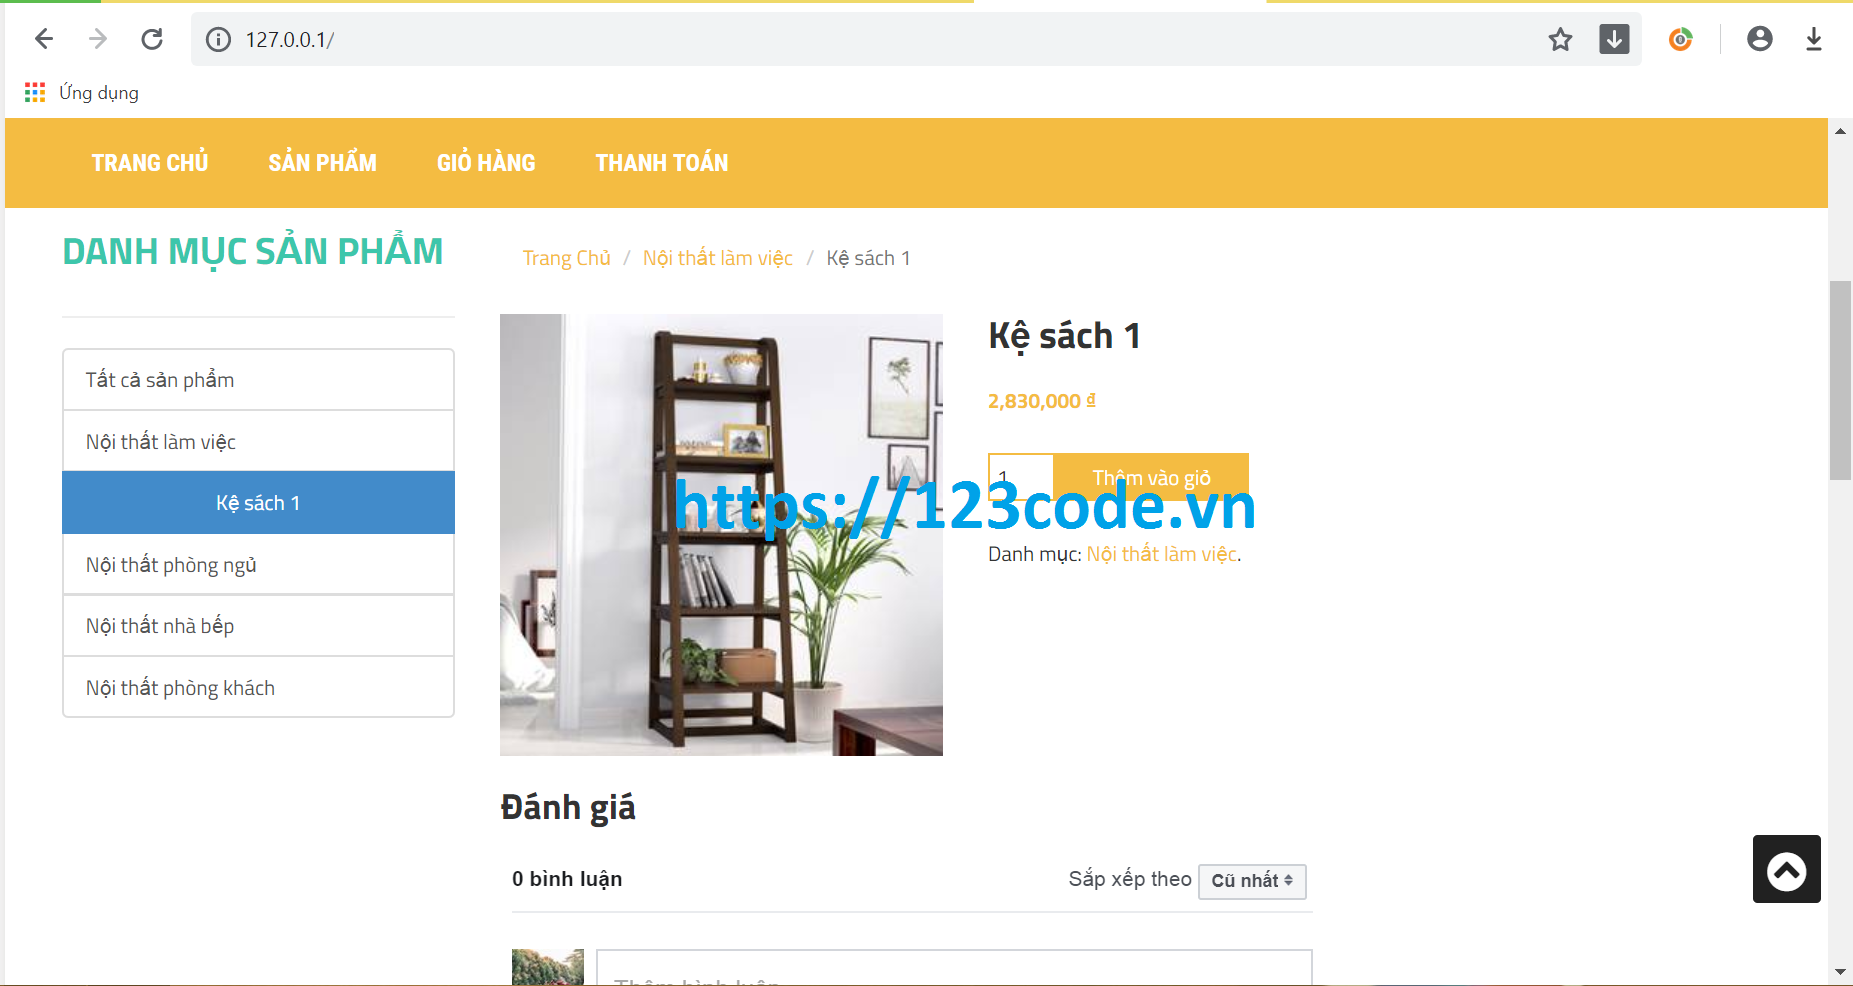 Share source code website bán hàng nội thất php thuần full database